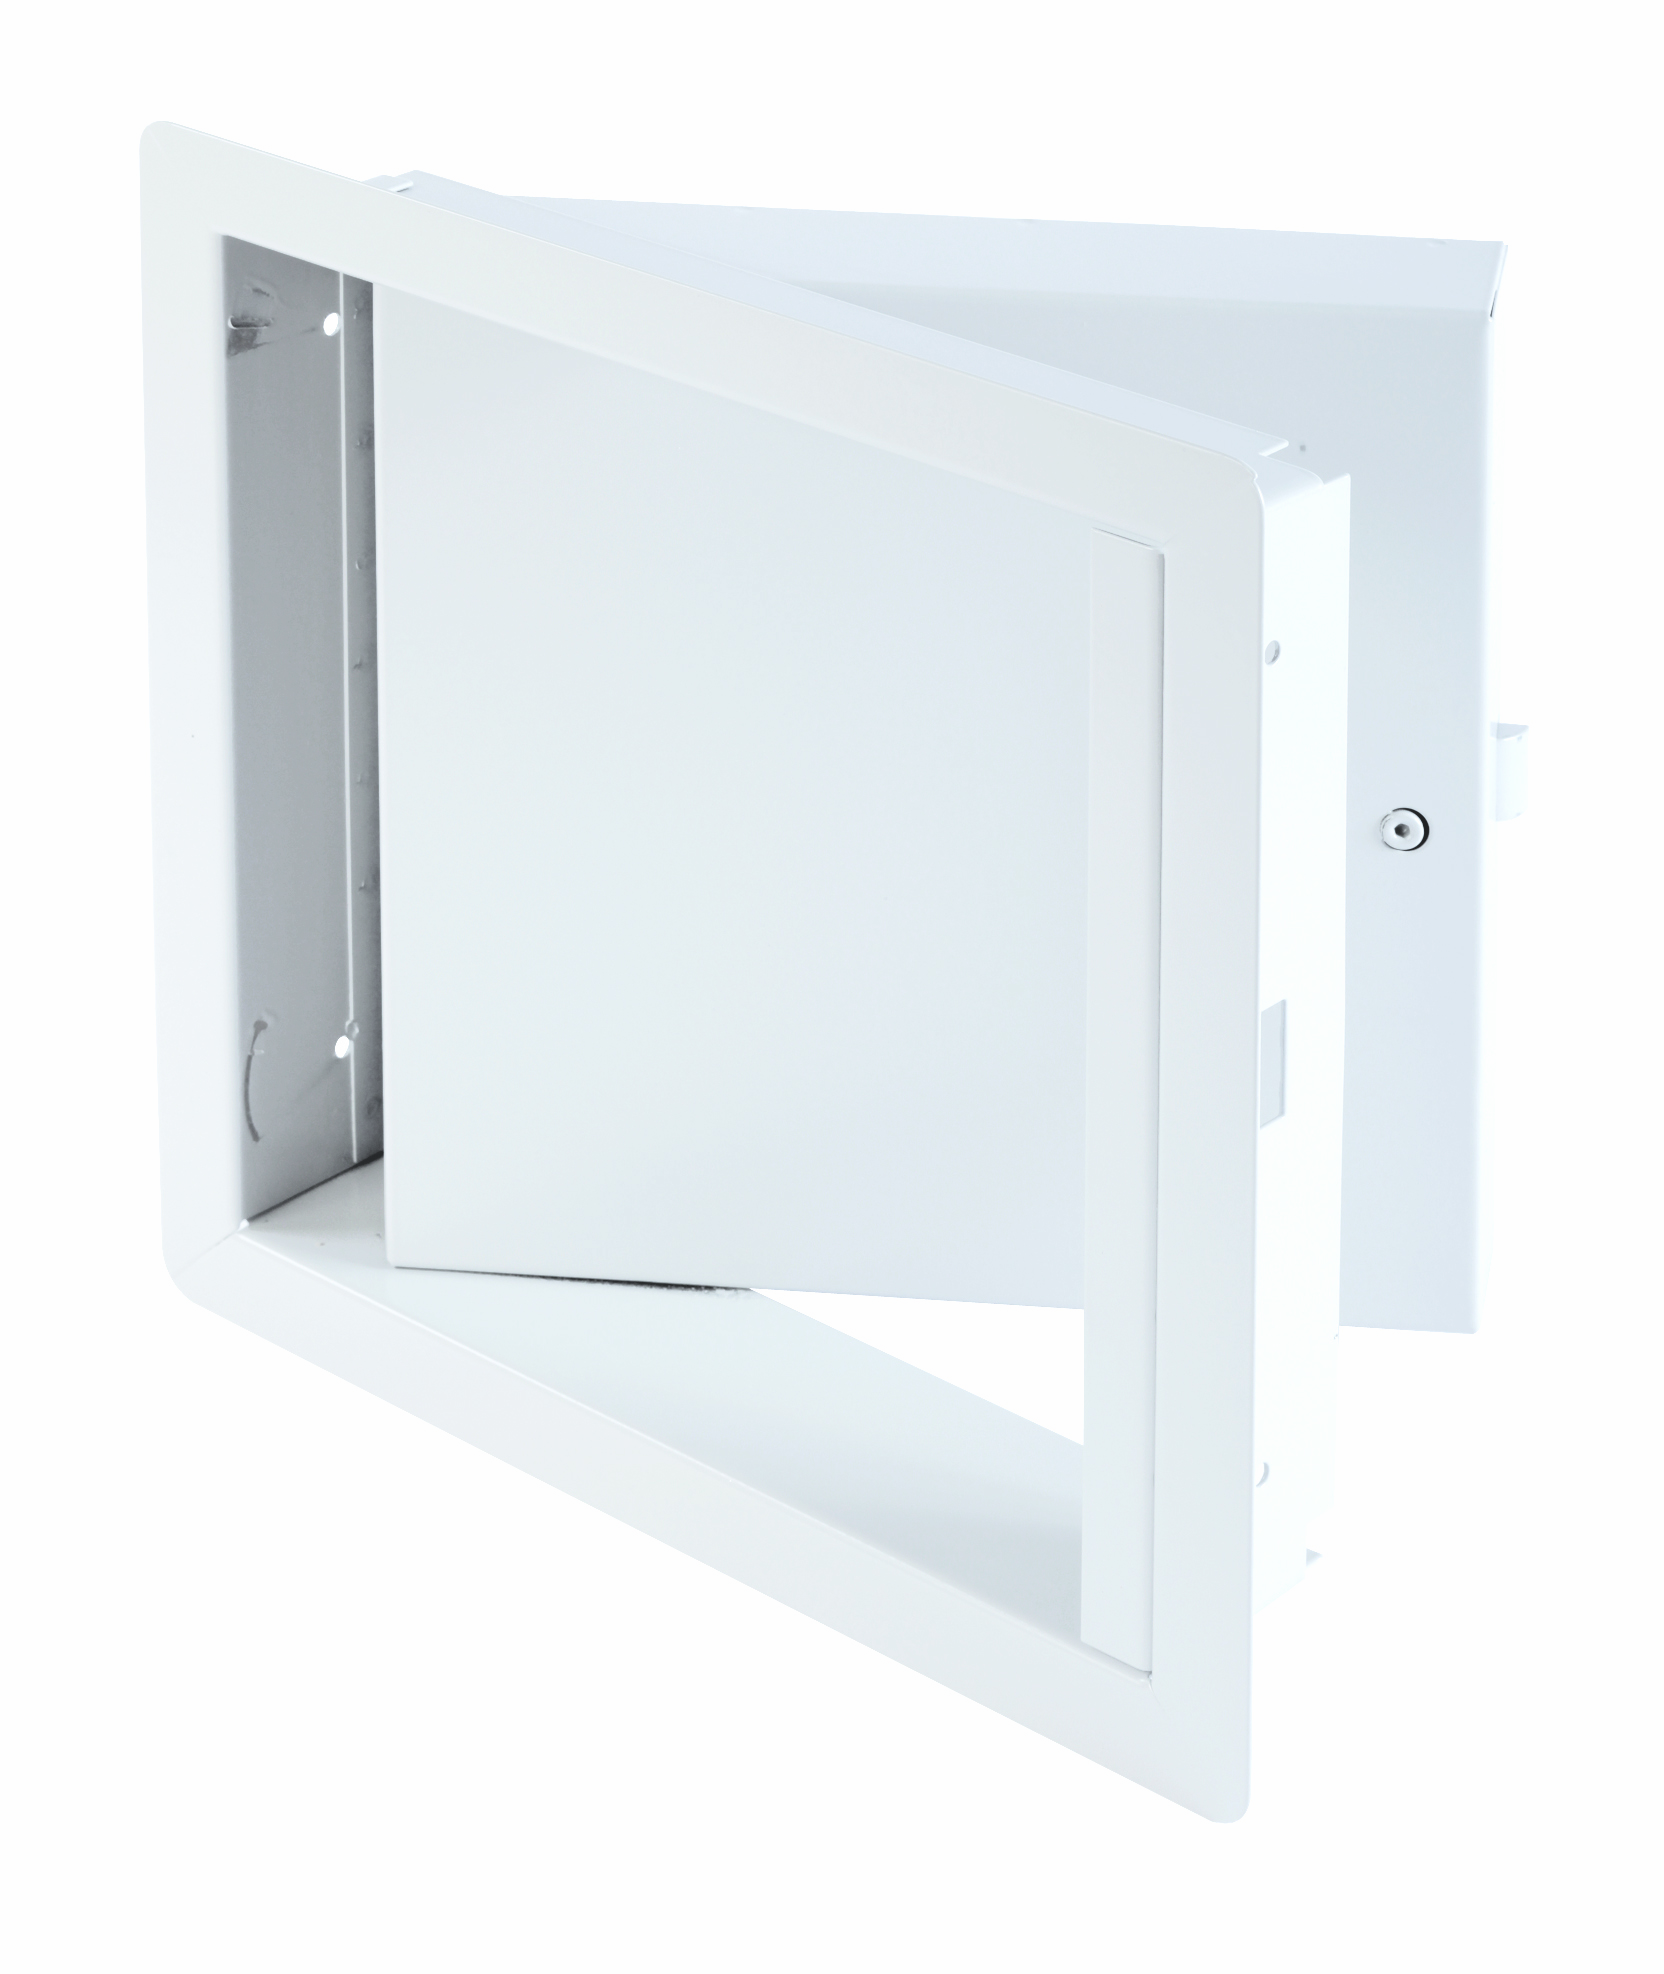 Fire-Rated Insulated Upward Opening Access Door with Exposed Flange, hex head slam latch and ring key operated slam latch, piano hinge